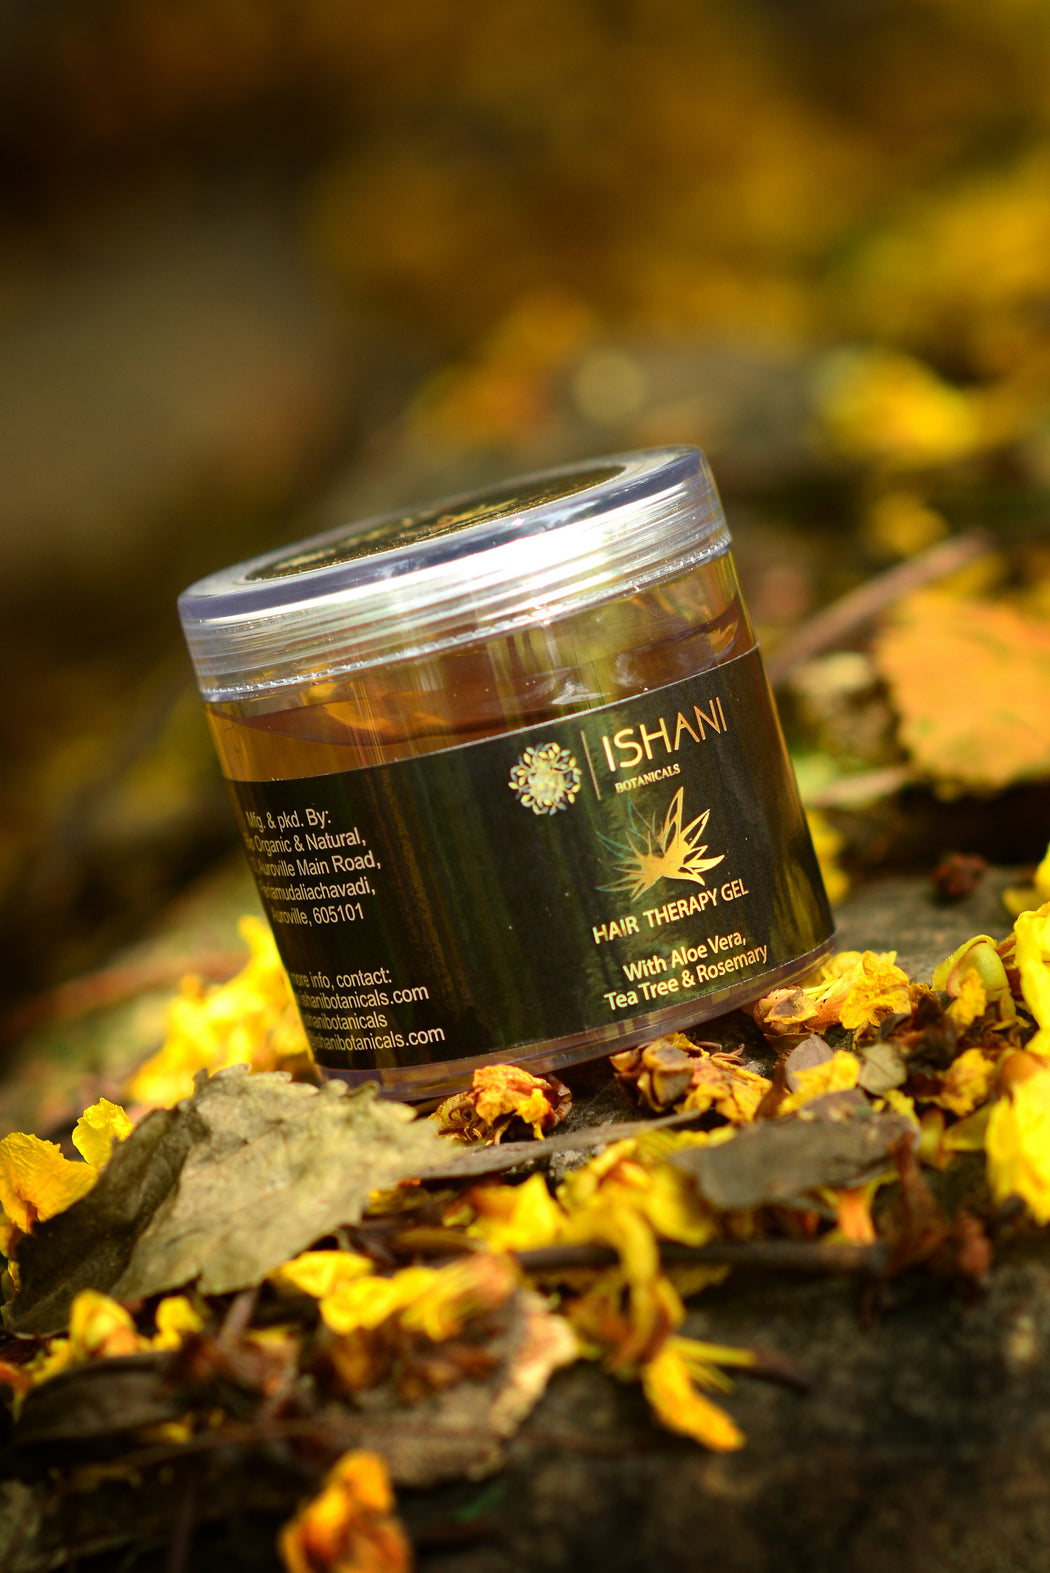 Ishani Botanicals Vegan Organic Hair Therapy Gel